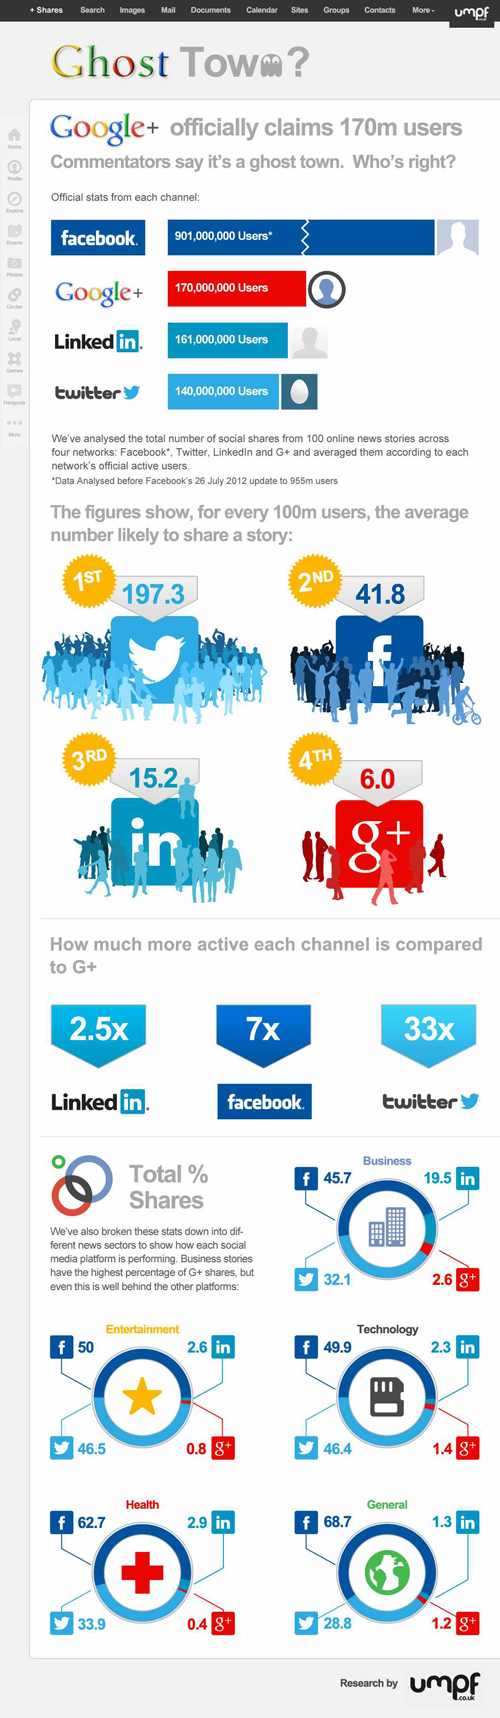 Google Plus Ghost Town? G+ Social Shares Lowest Compared to Facebook, Twitter And Even LinkedIn